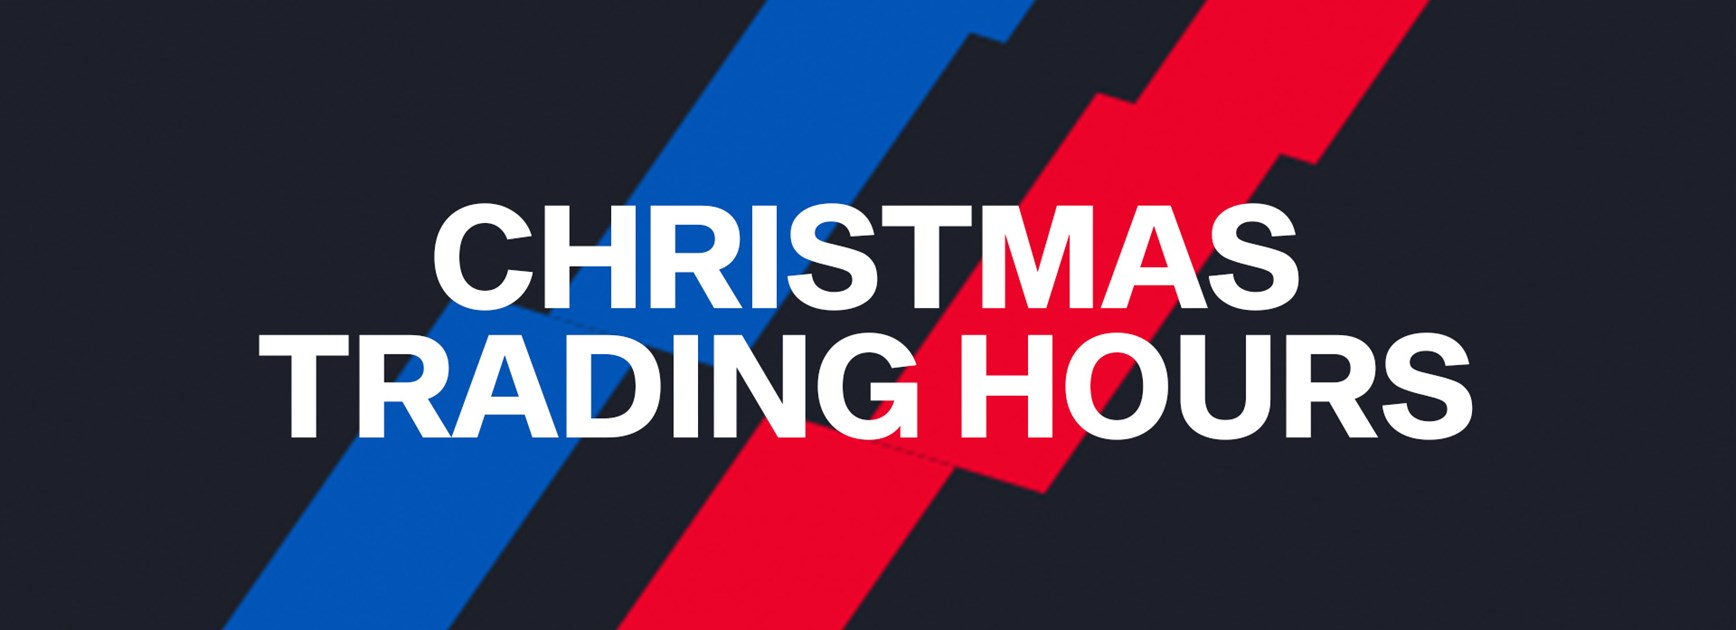 Knights Club Shop Christmas trading hours